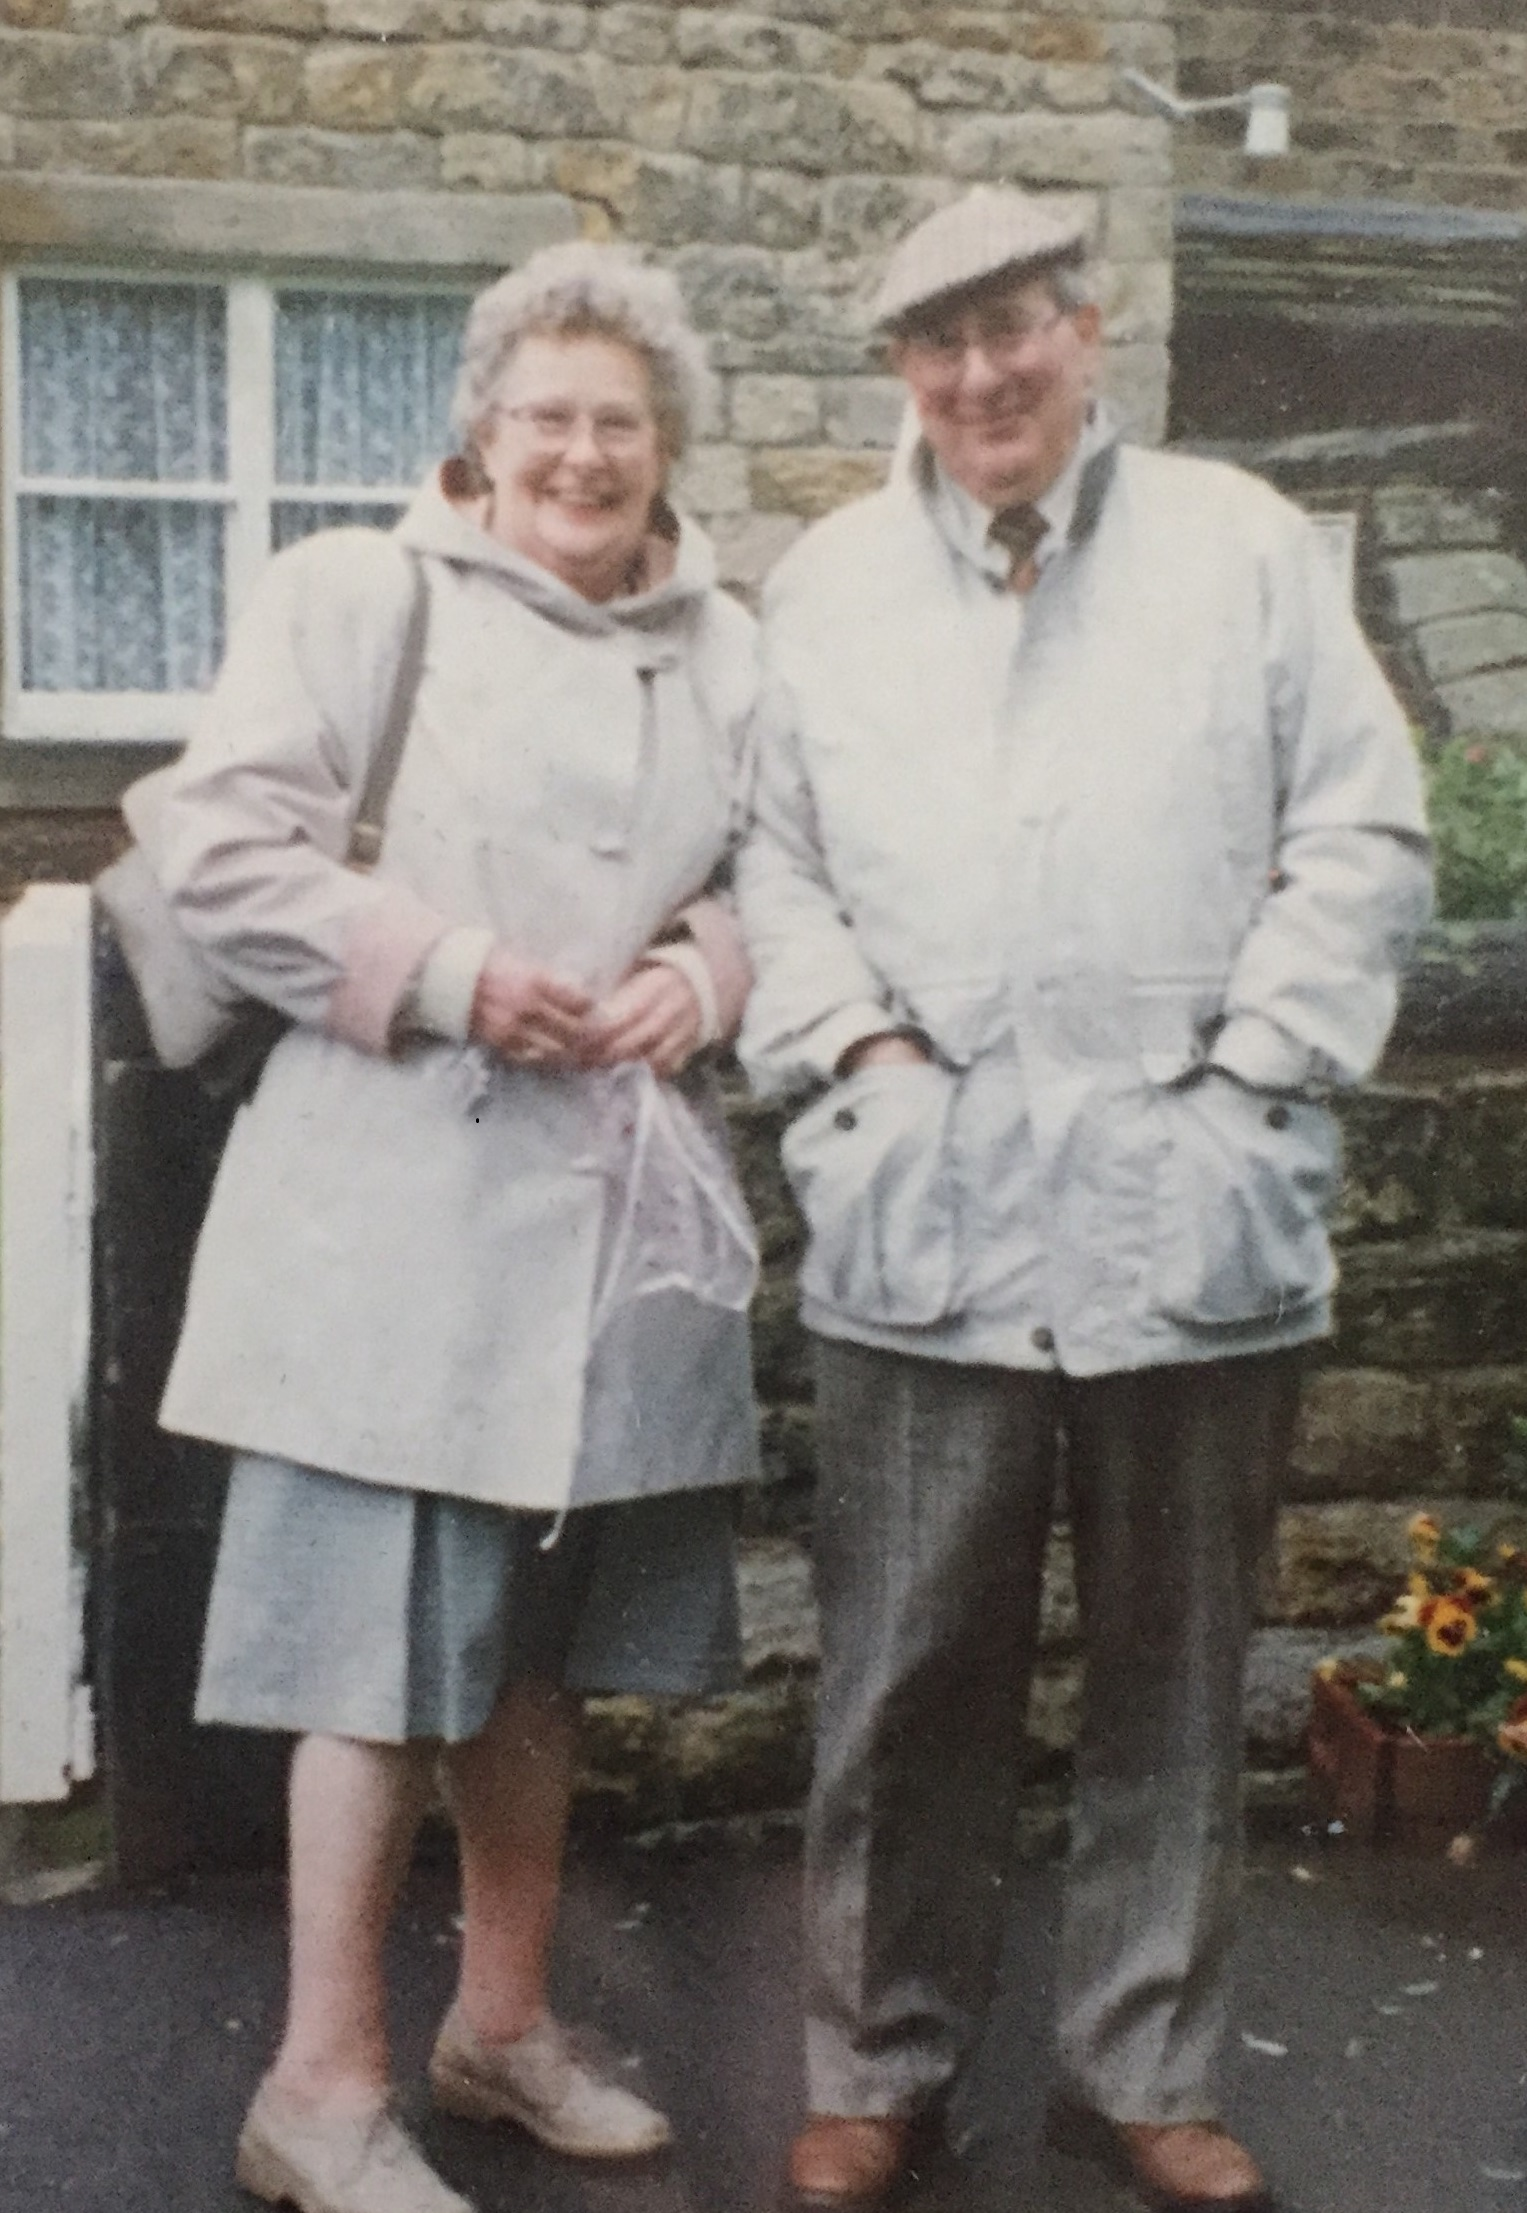 Marion and Eric Walsh, who died in a crash in Cleckheaton last week